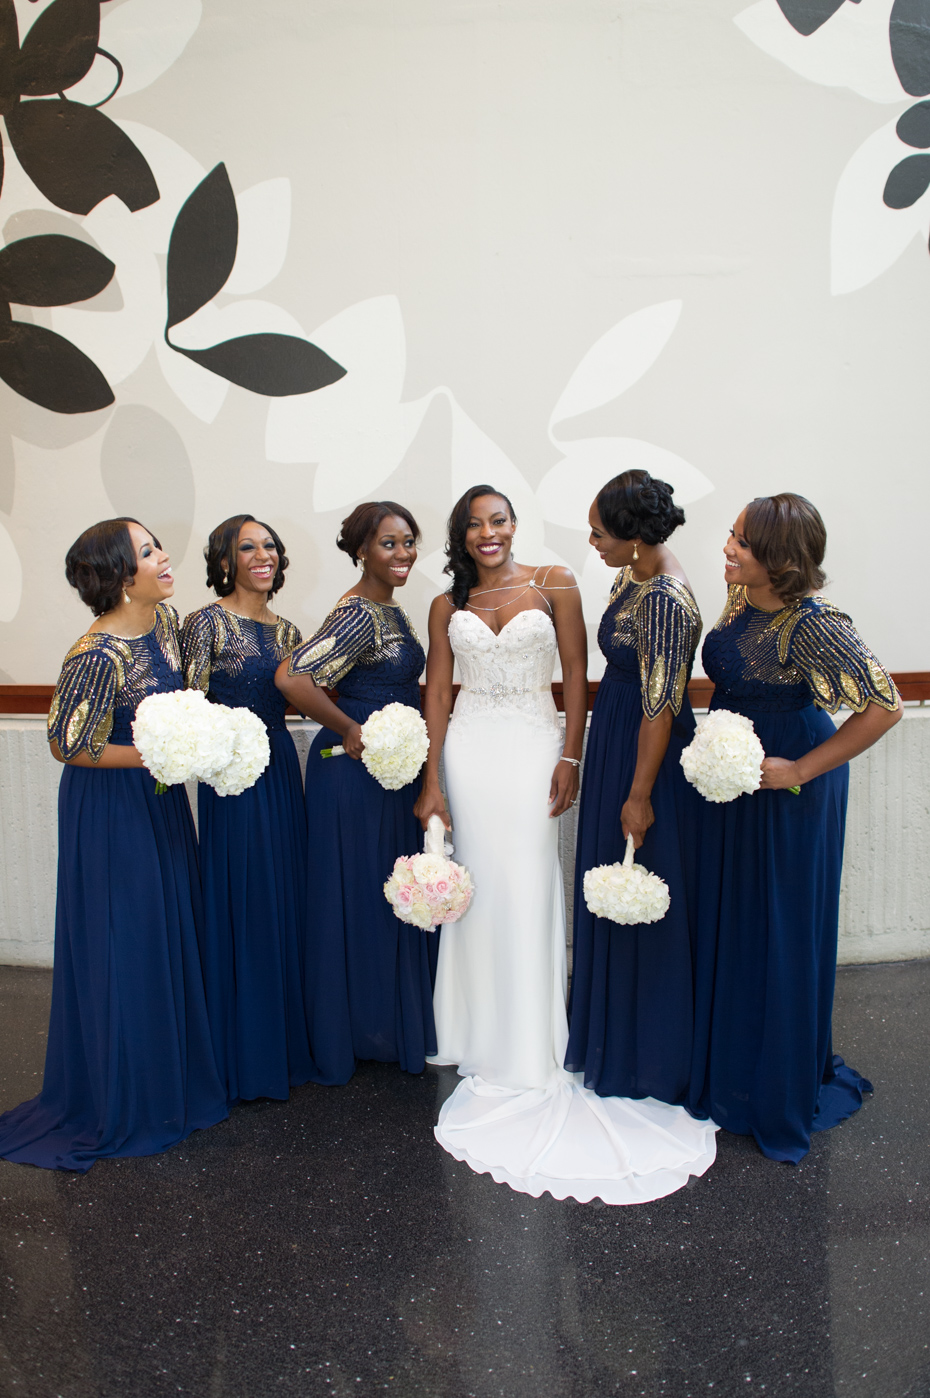 Navy and gold bridesmaid dresses image collections braidsmaid navy and gold bridesmaid dresses good dresses navy and gold bridesmaid dresses good dresses navy and ombrellifo Image collections